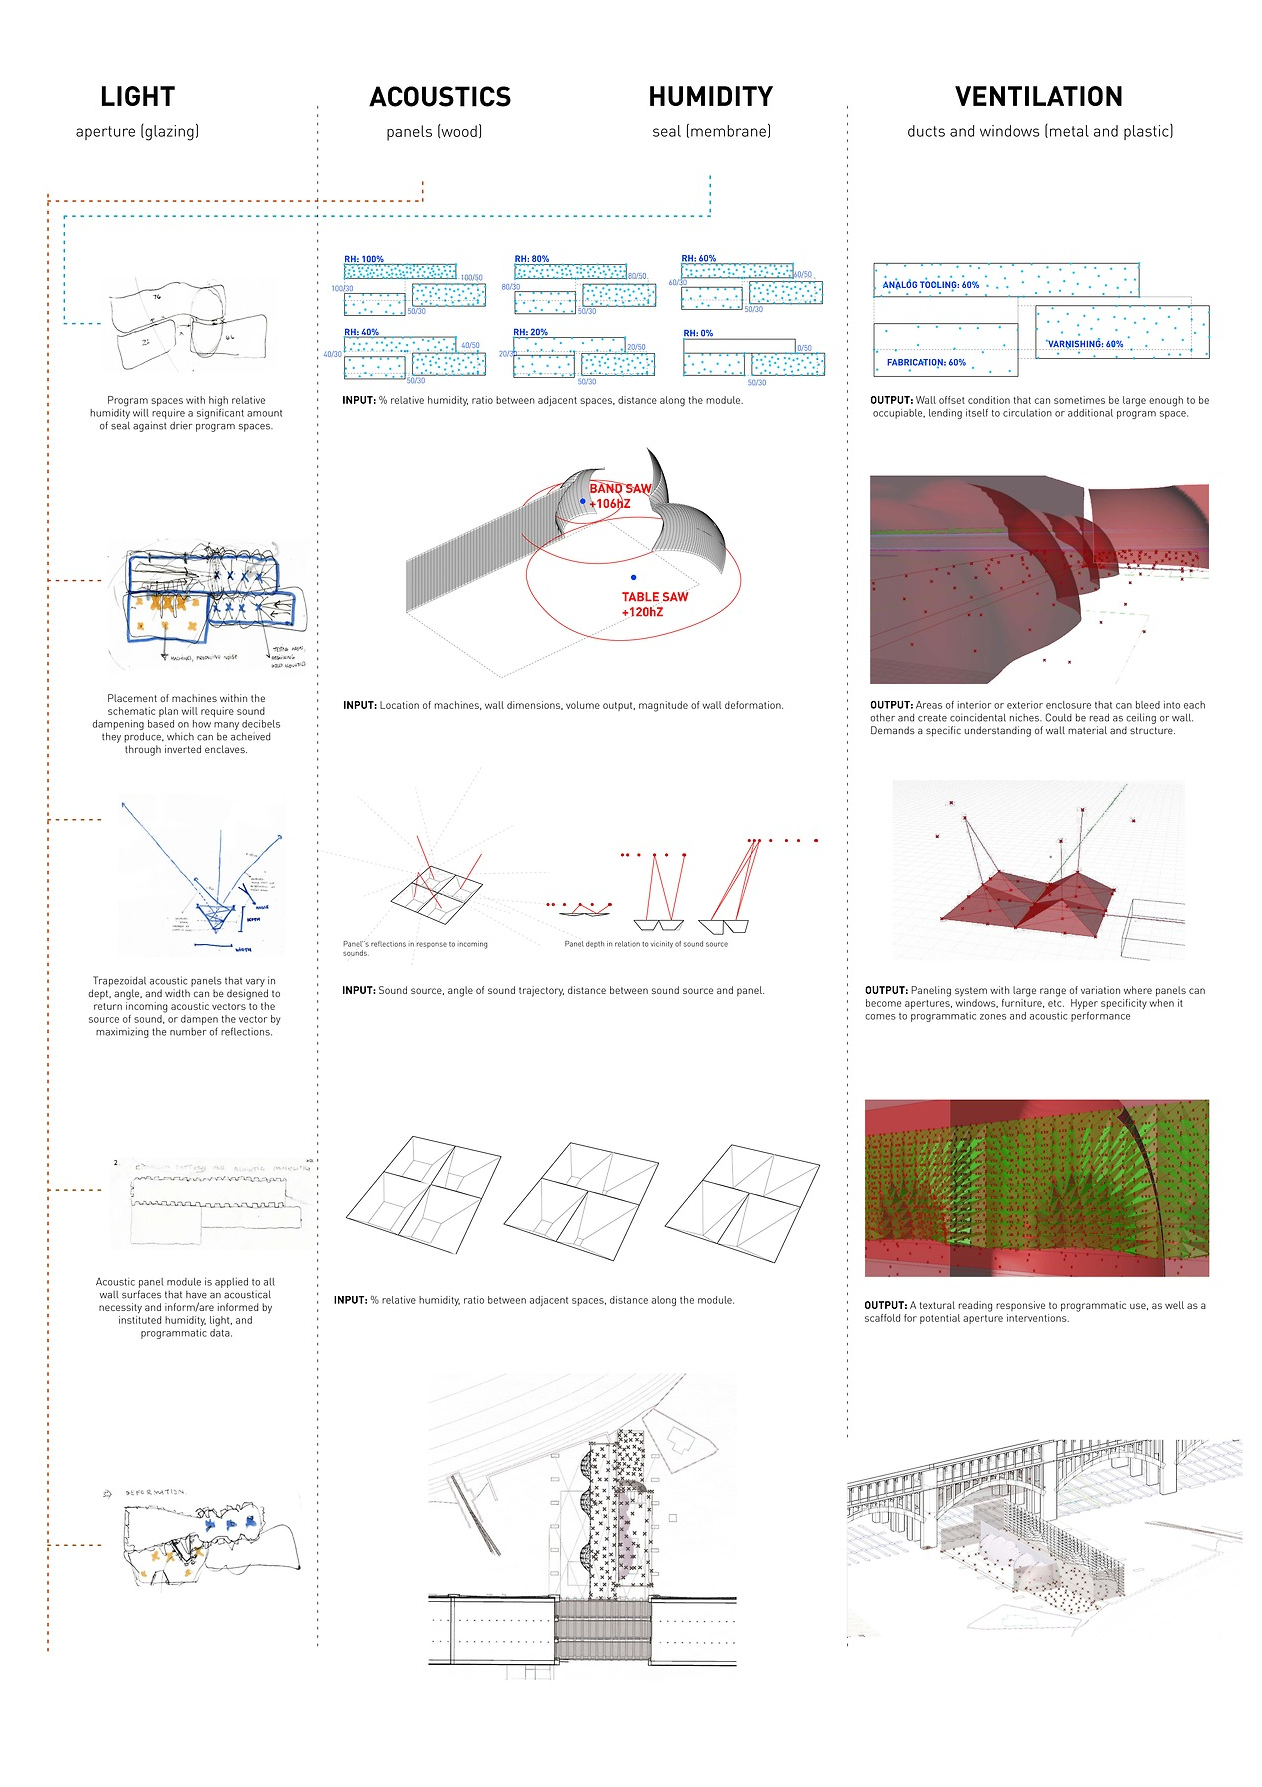 Preliminary studies in acoustical conditions.